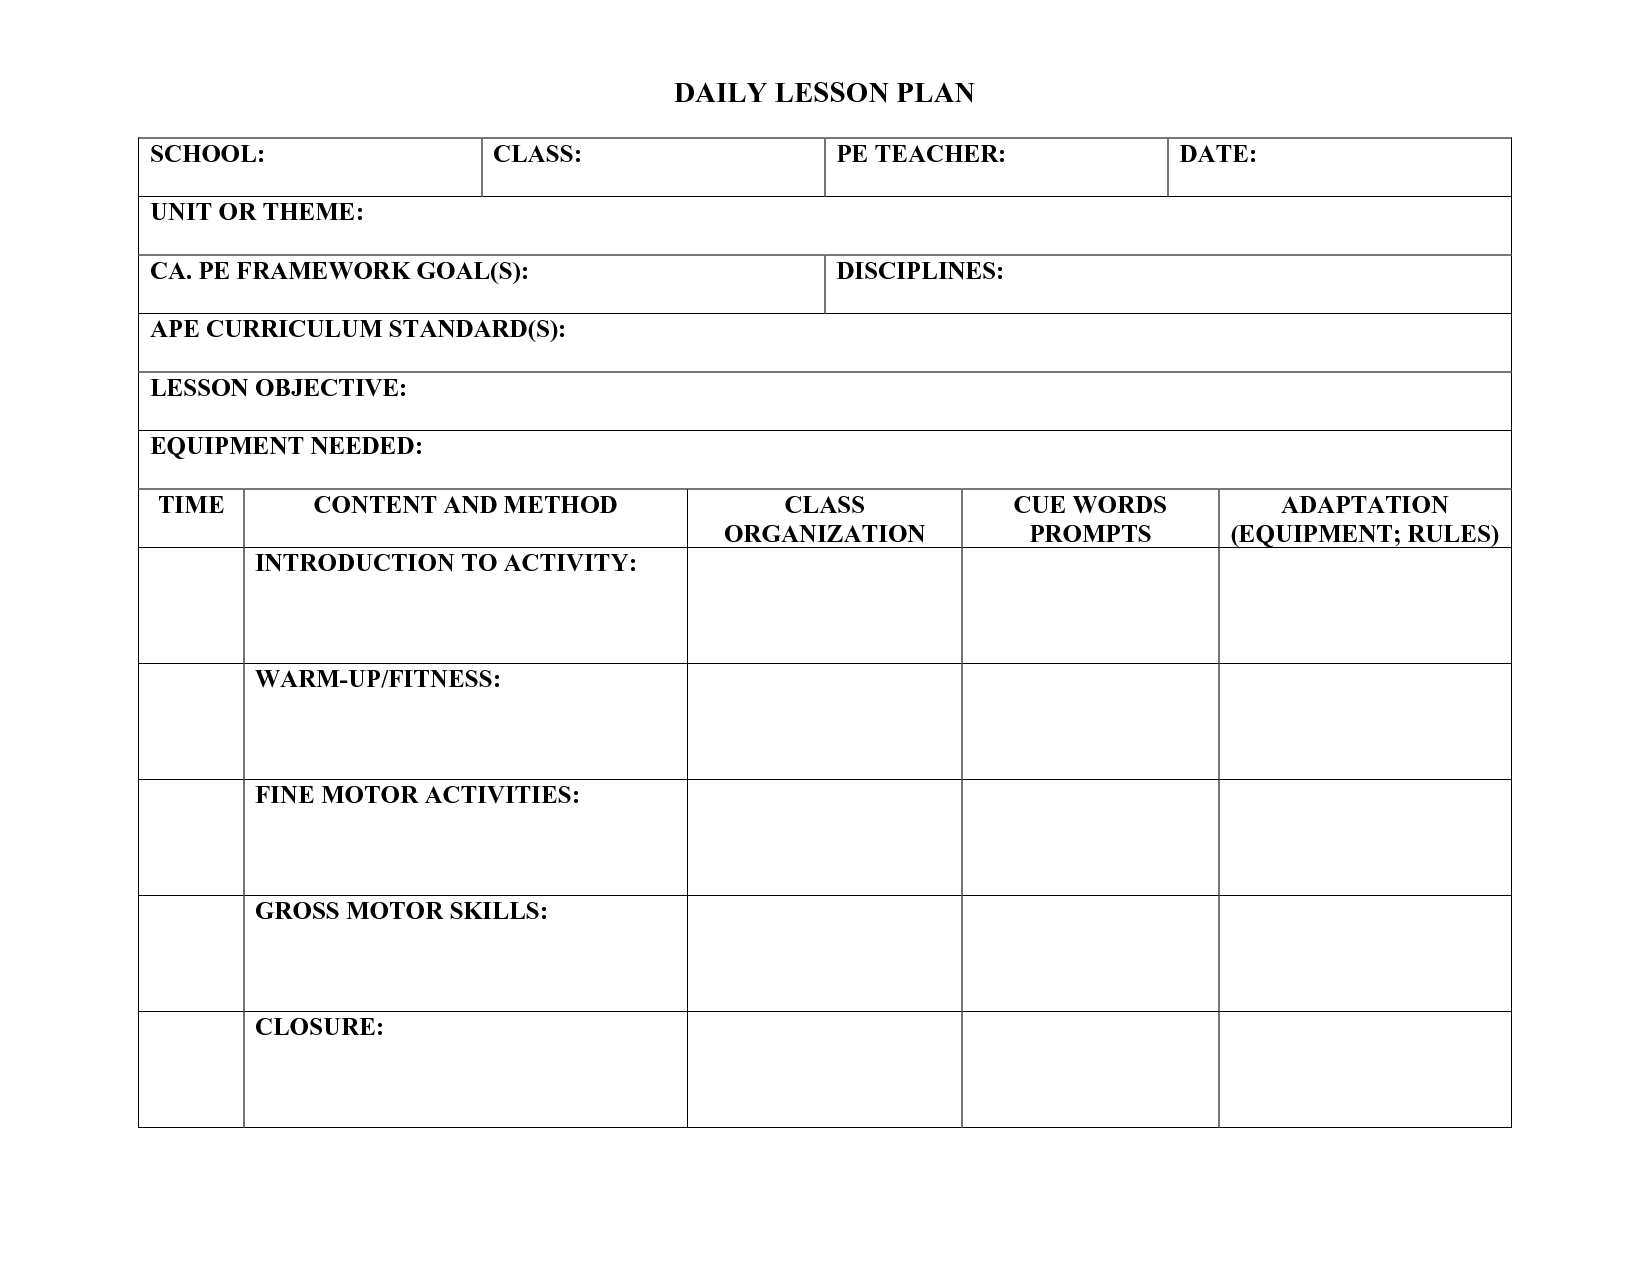 Daily lesson plan template rich image and for World language lesson plan template